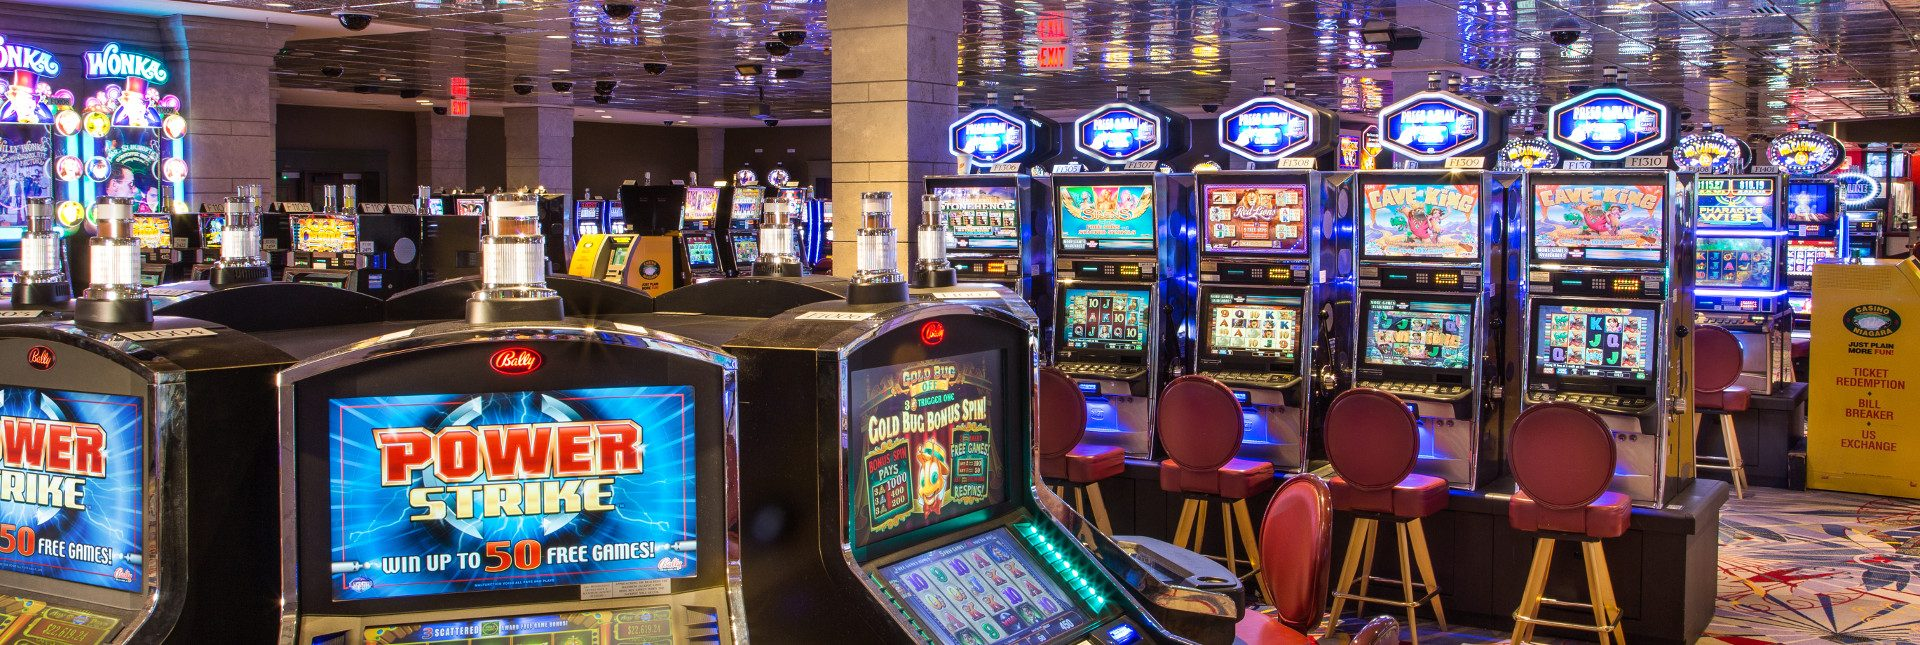 fallsview casino players advantage club